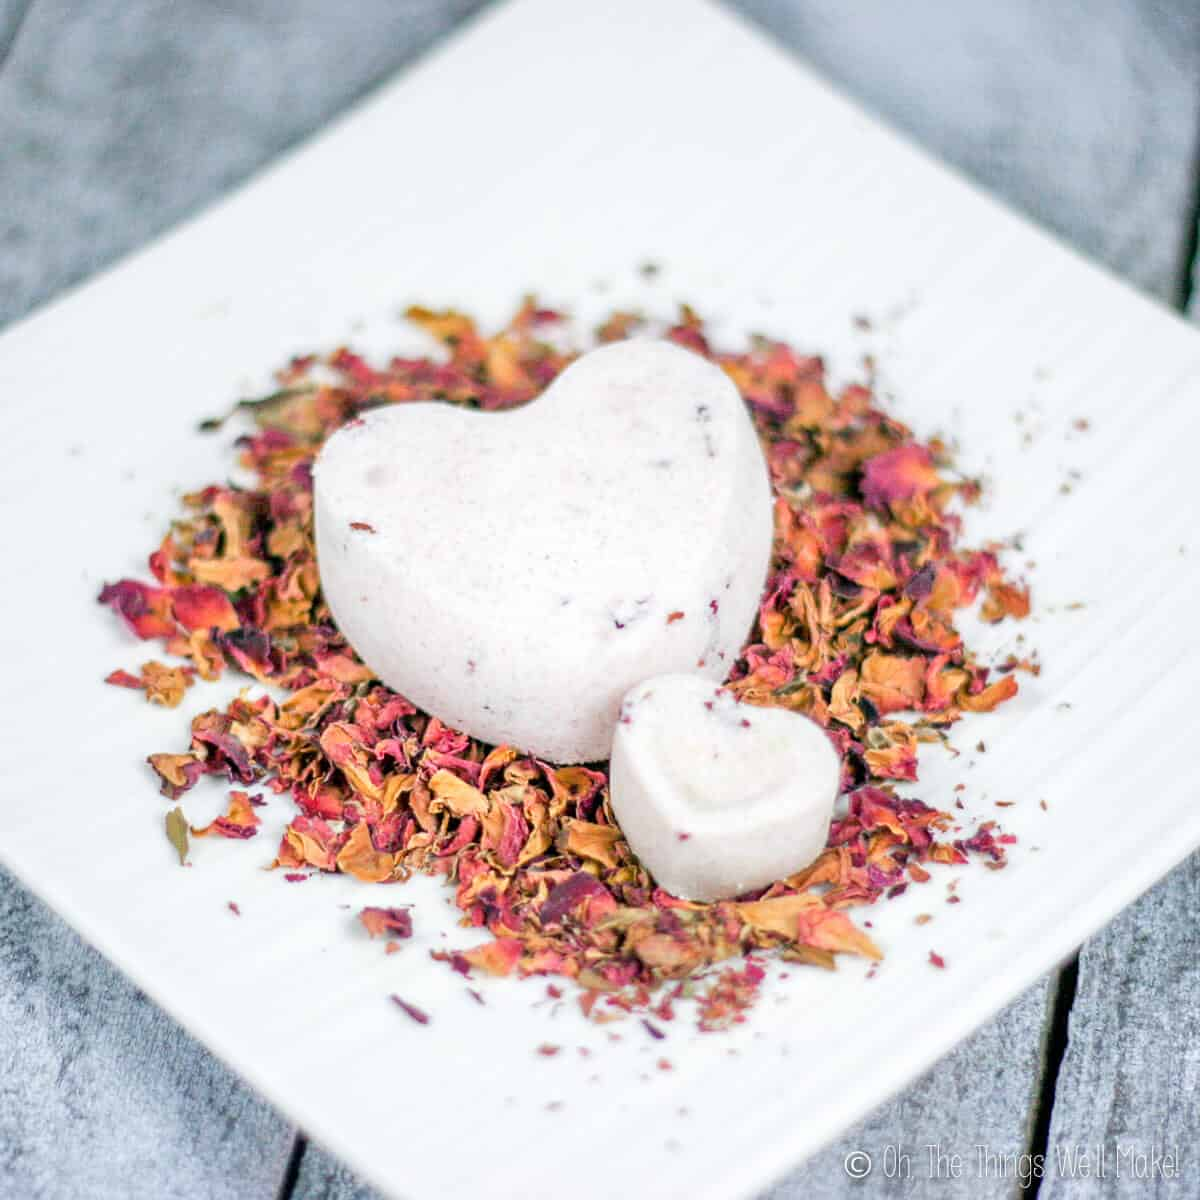 Close up of two heart shaped bath bombs. A large one and a small one placed on a plate full of rose petals.